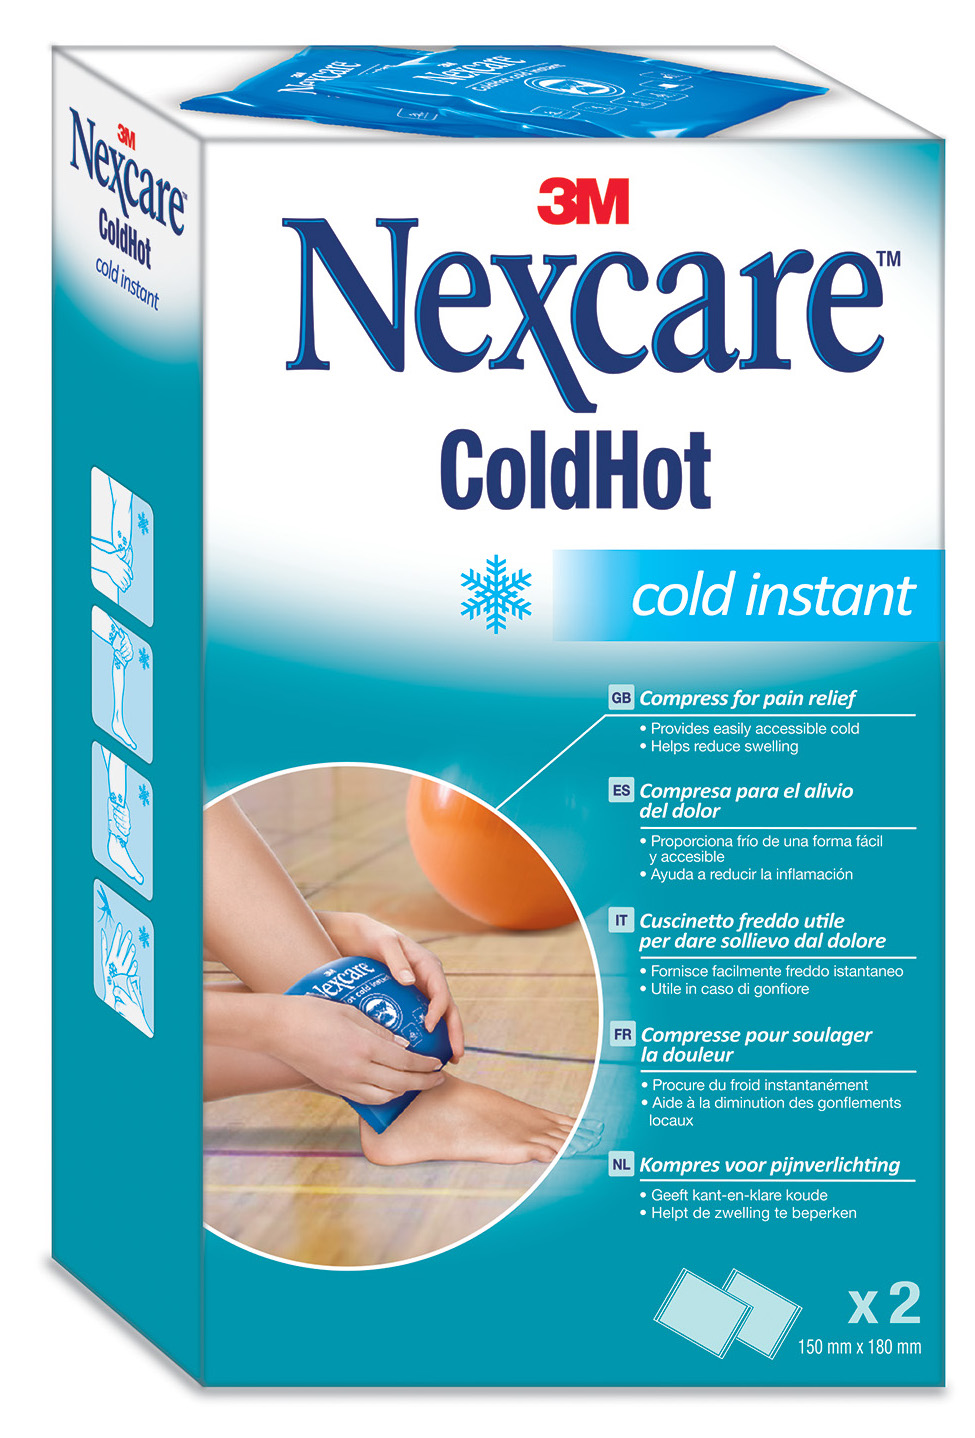 3M Nexcare Coldhot Instant Cold 2st